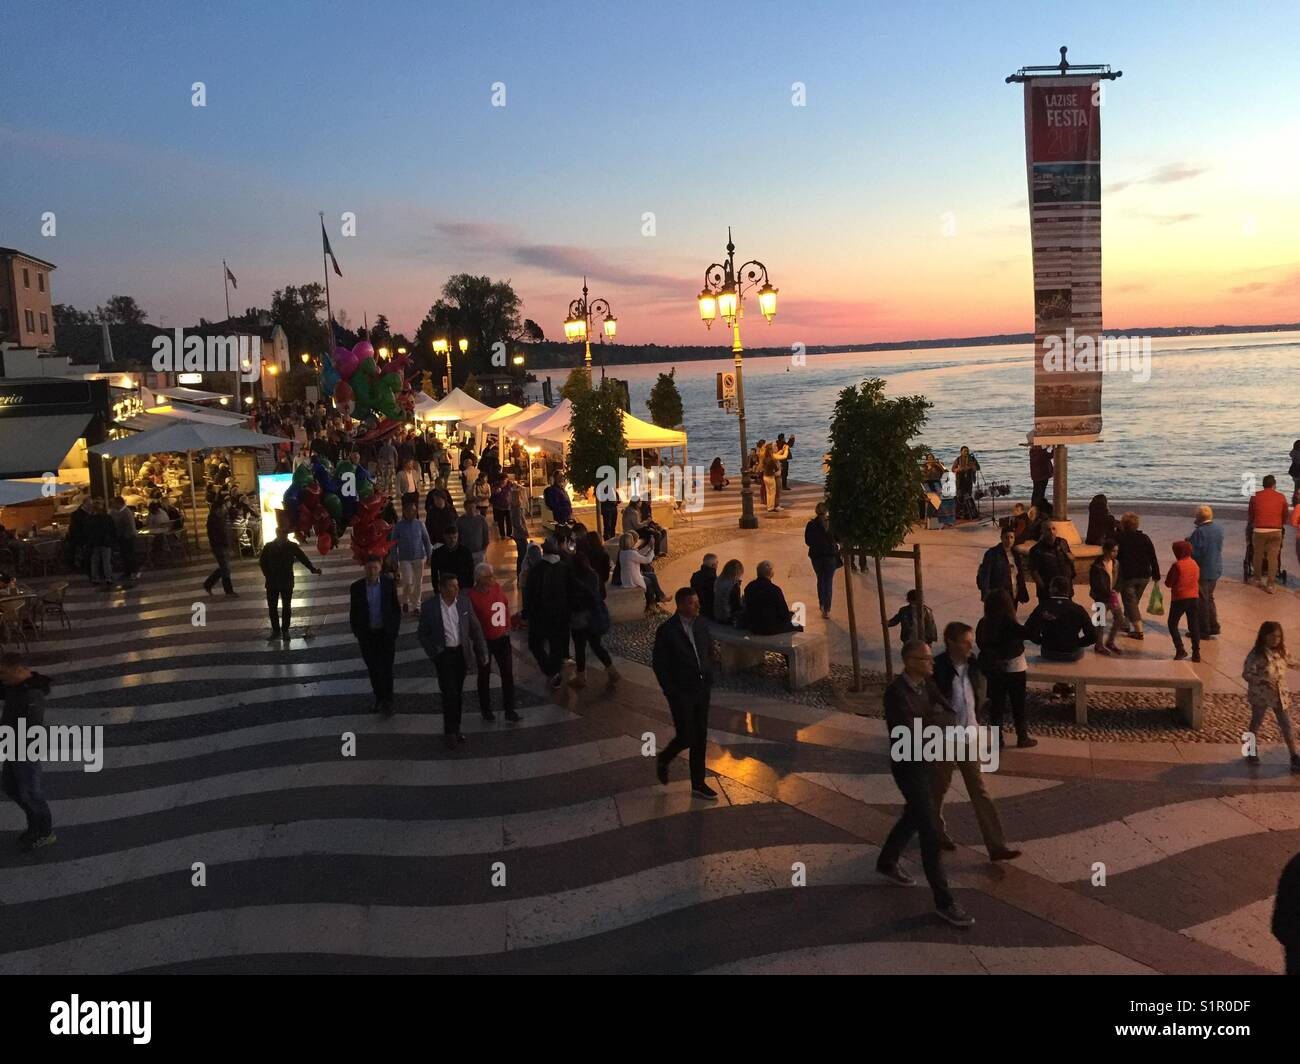 via Sponchi, Lazise Venezia, Italy, lake side or board walk in harbour with pedestrians , tourists and cafes under - Stock Image